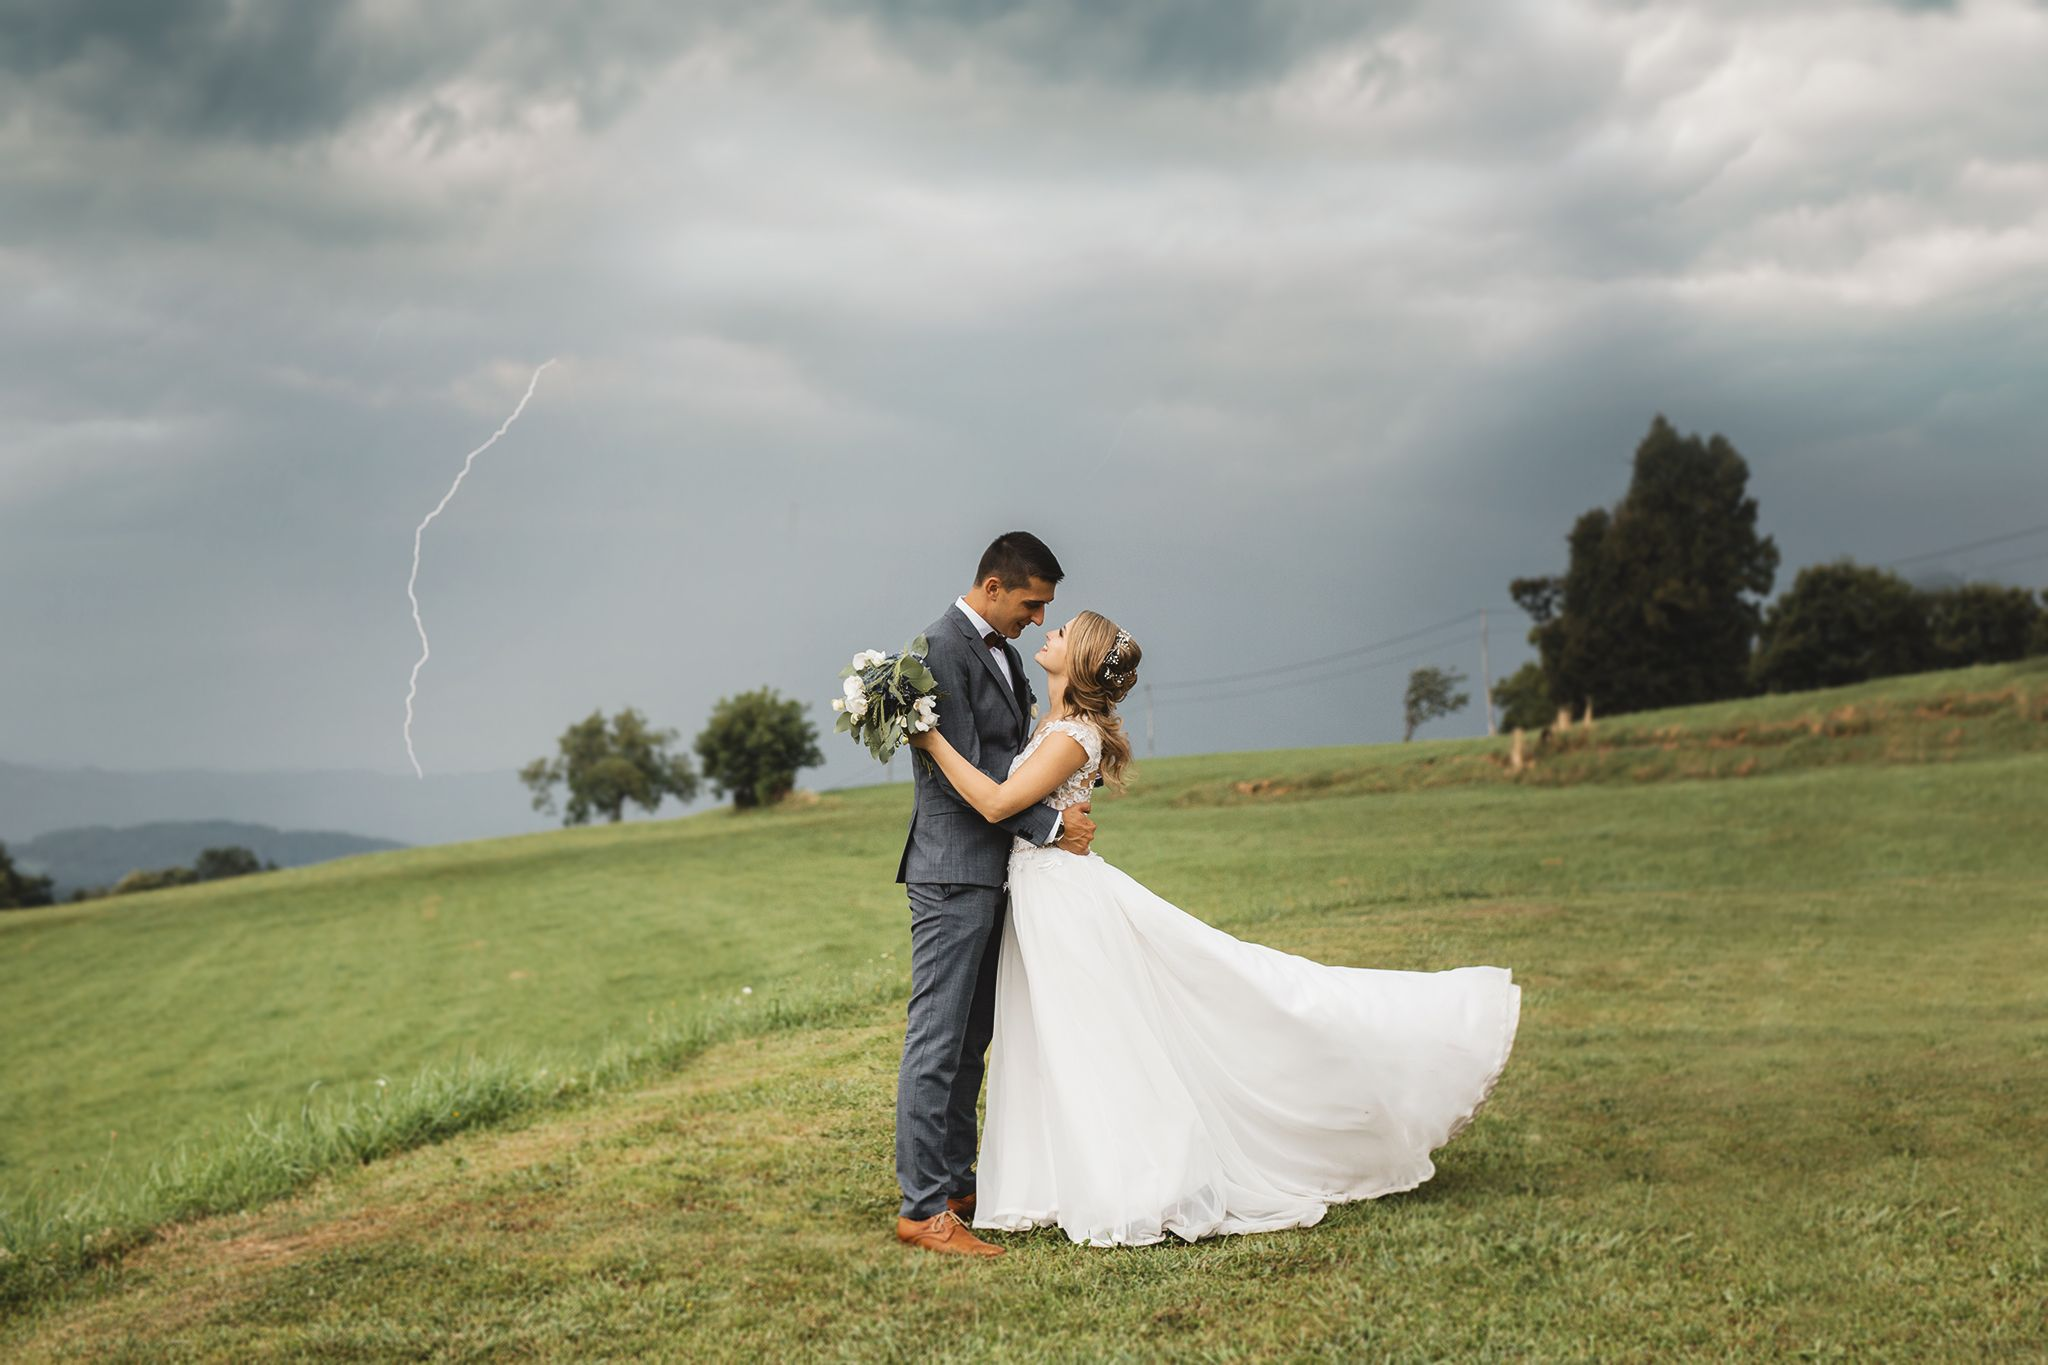 Stormy wedding with a lightning